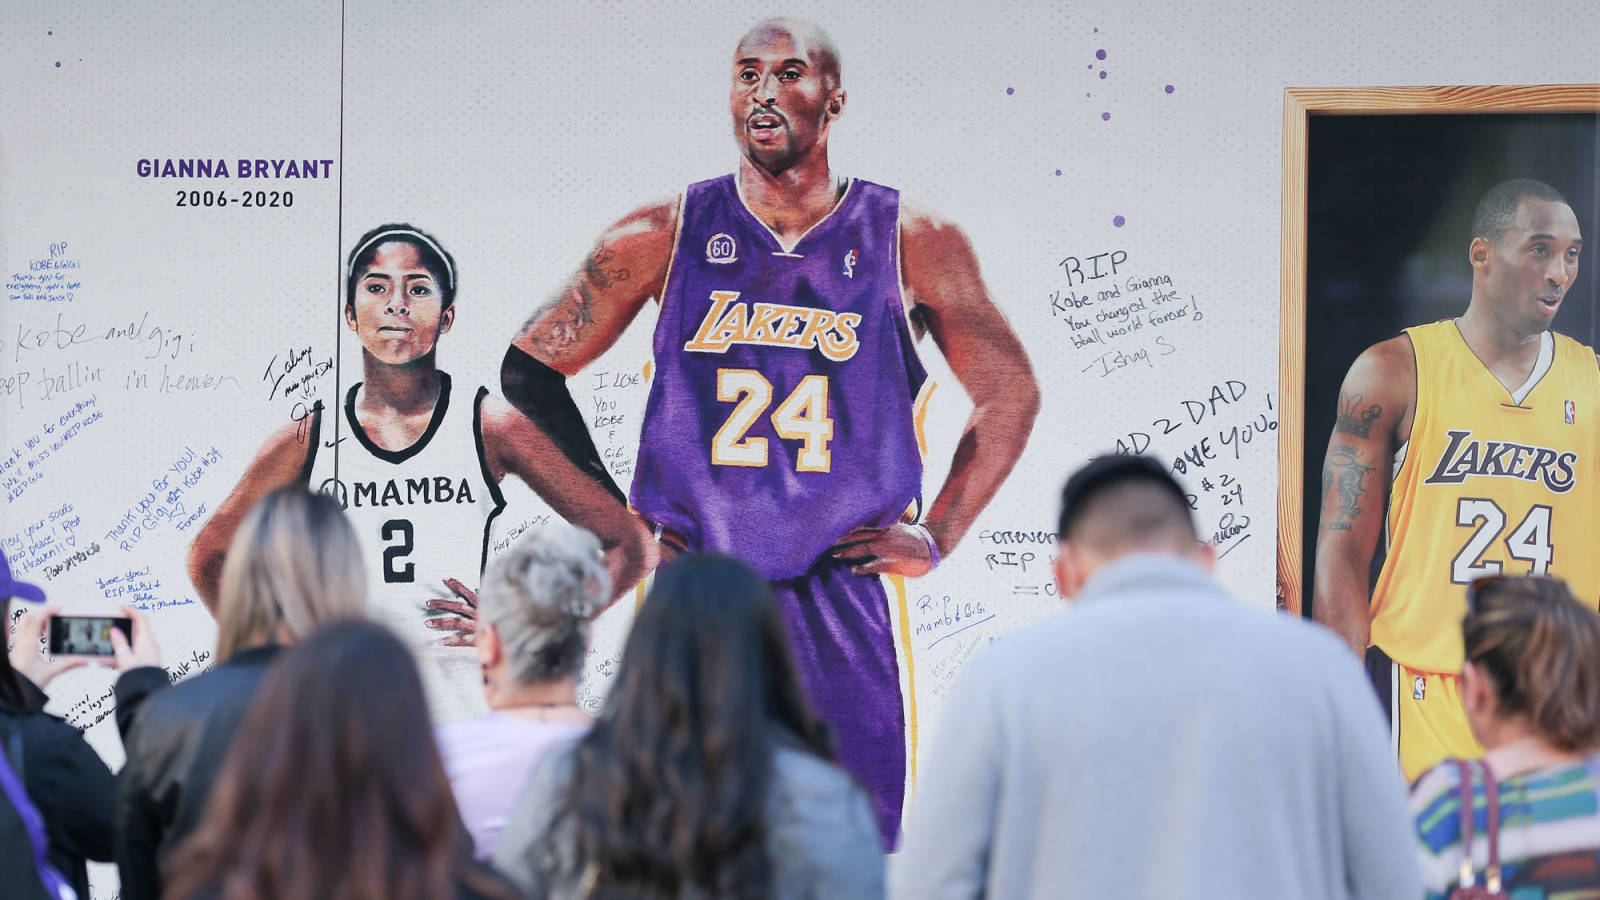 L.A. cops accused of sharing graphic images of Kobe Bryant crash site